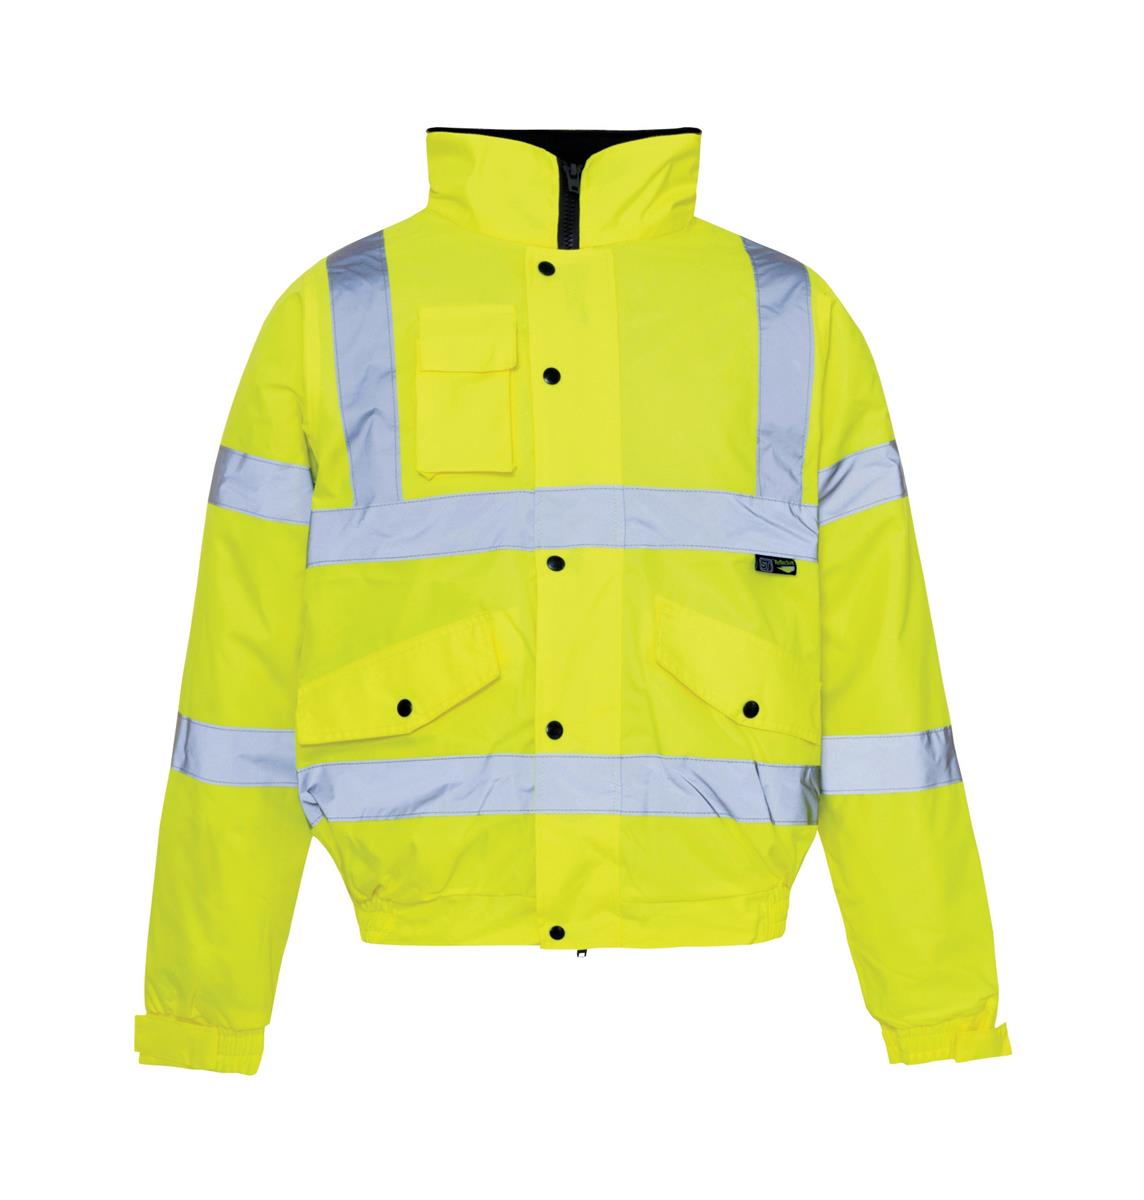 ST High Vis Standard Jacket Storm Bomber Warm Padded Lining Med Yellow Ref 36842 *Approx 3 Day Leadtime*